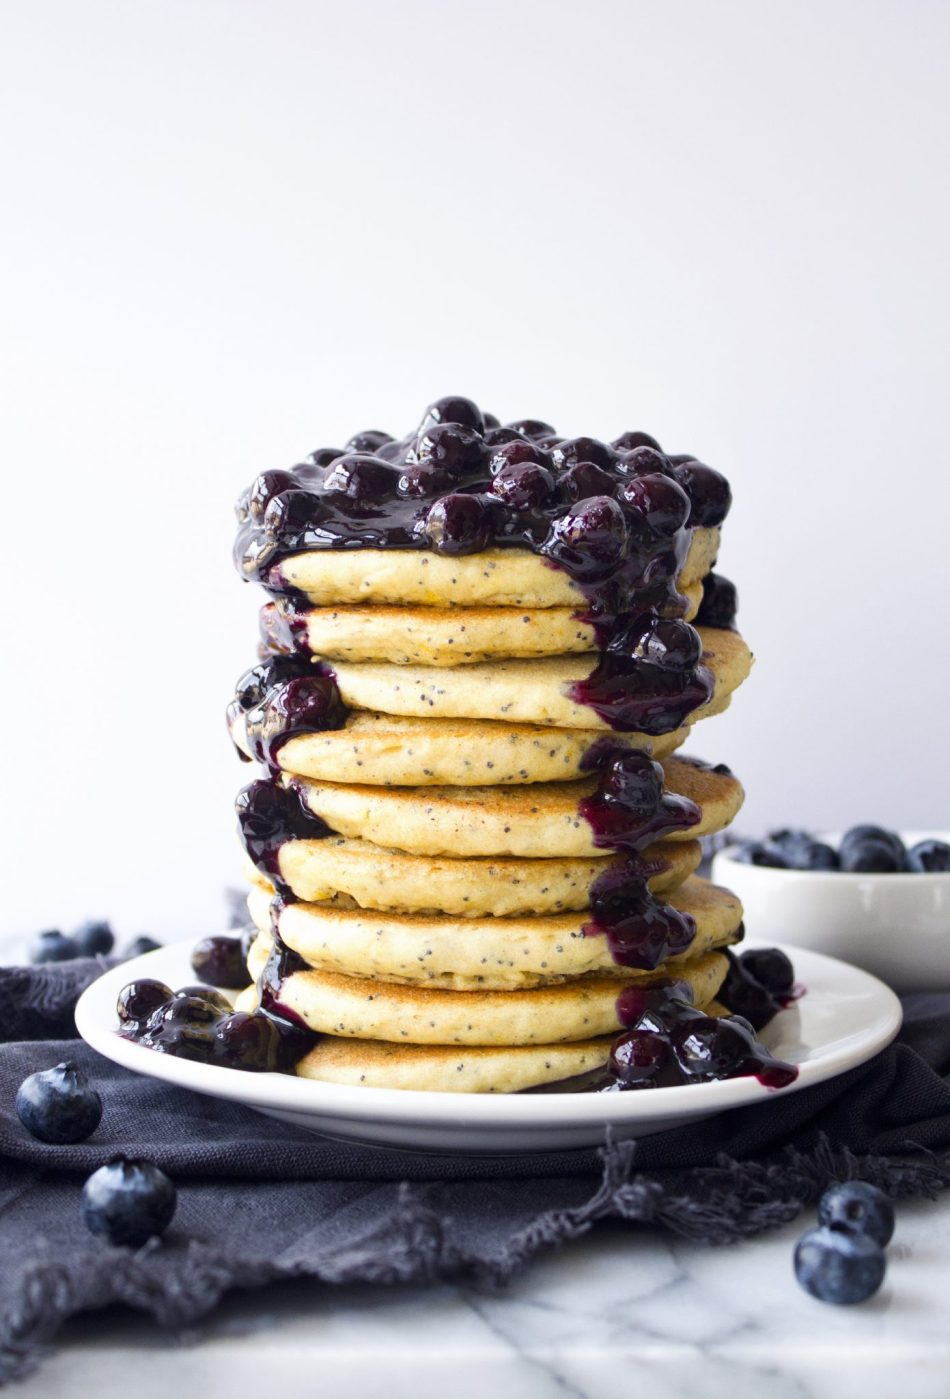 Lemon Poppyseed Pancakes With Blueberry Sauce | Gluten, dairy, and refined sugar free.